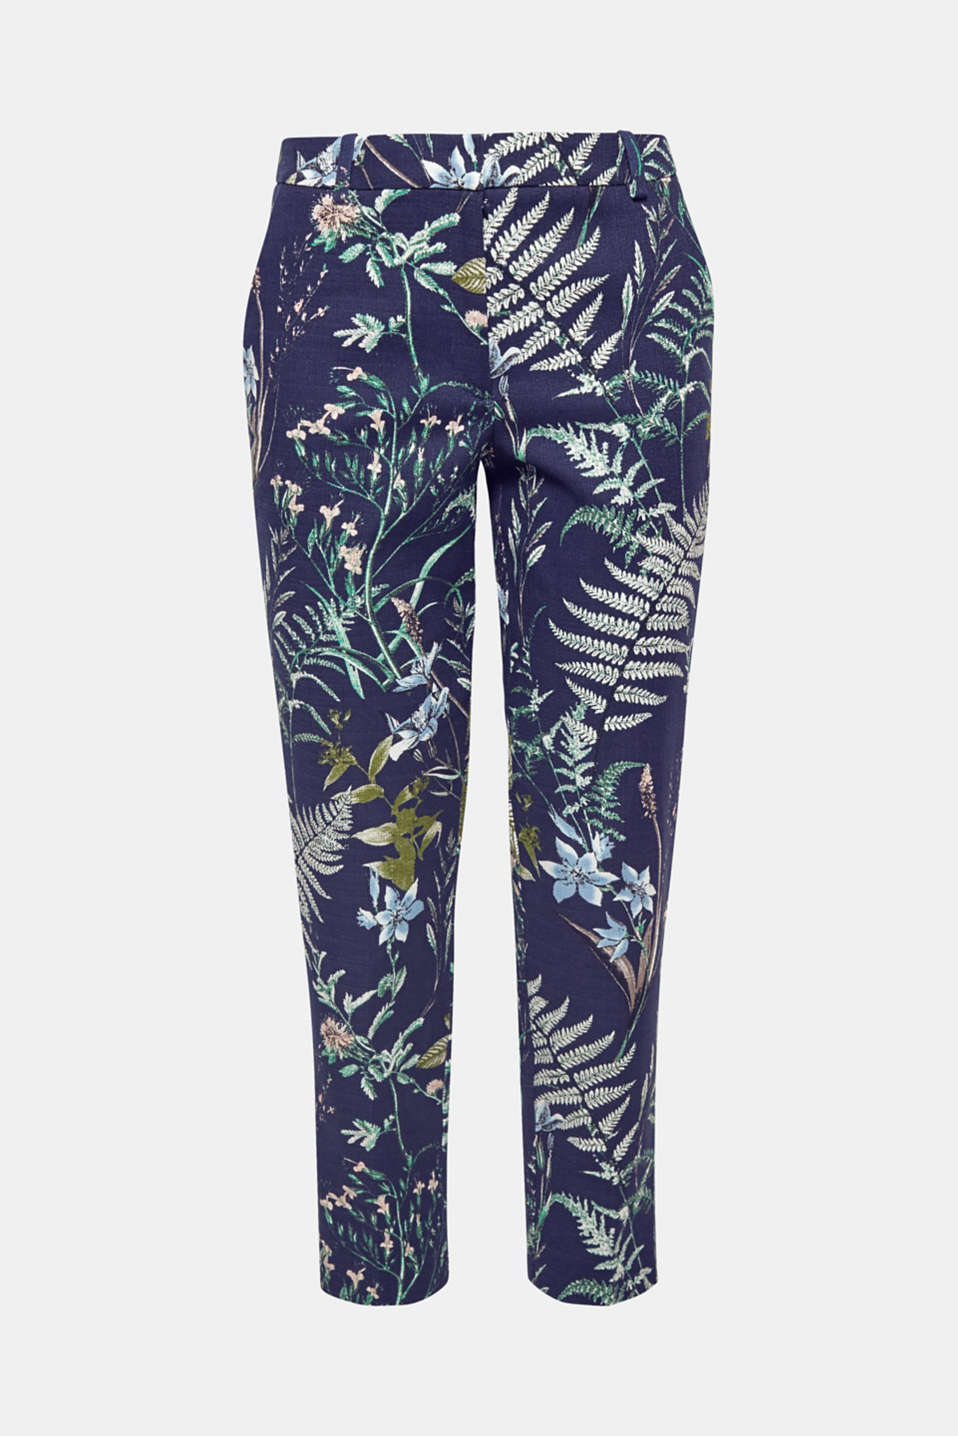 A fashionable highlight for your summer wardrobe: cropped trousers made of textured cotton with a botanical print and stretch for comfort.